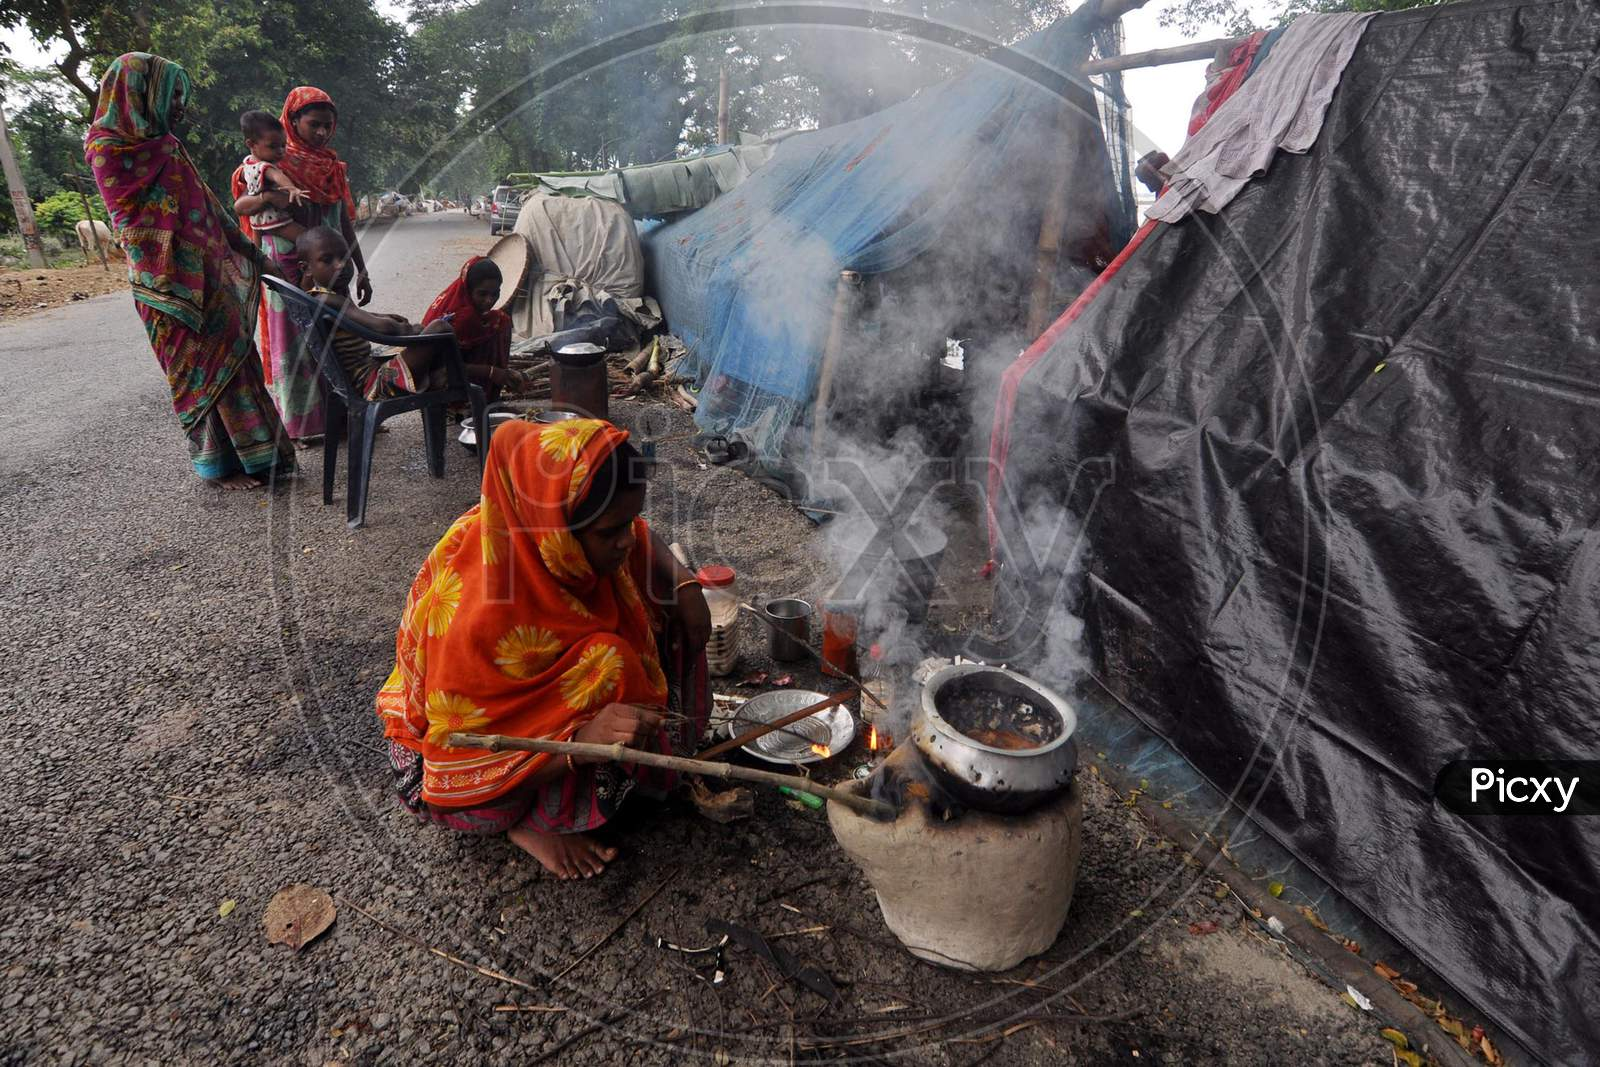 A women cooks food at a makeshift relief camps on the road at Sildubi in Morigaon, Assam on July 18, 2020